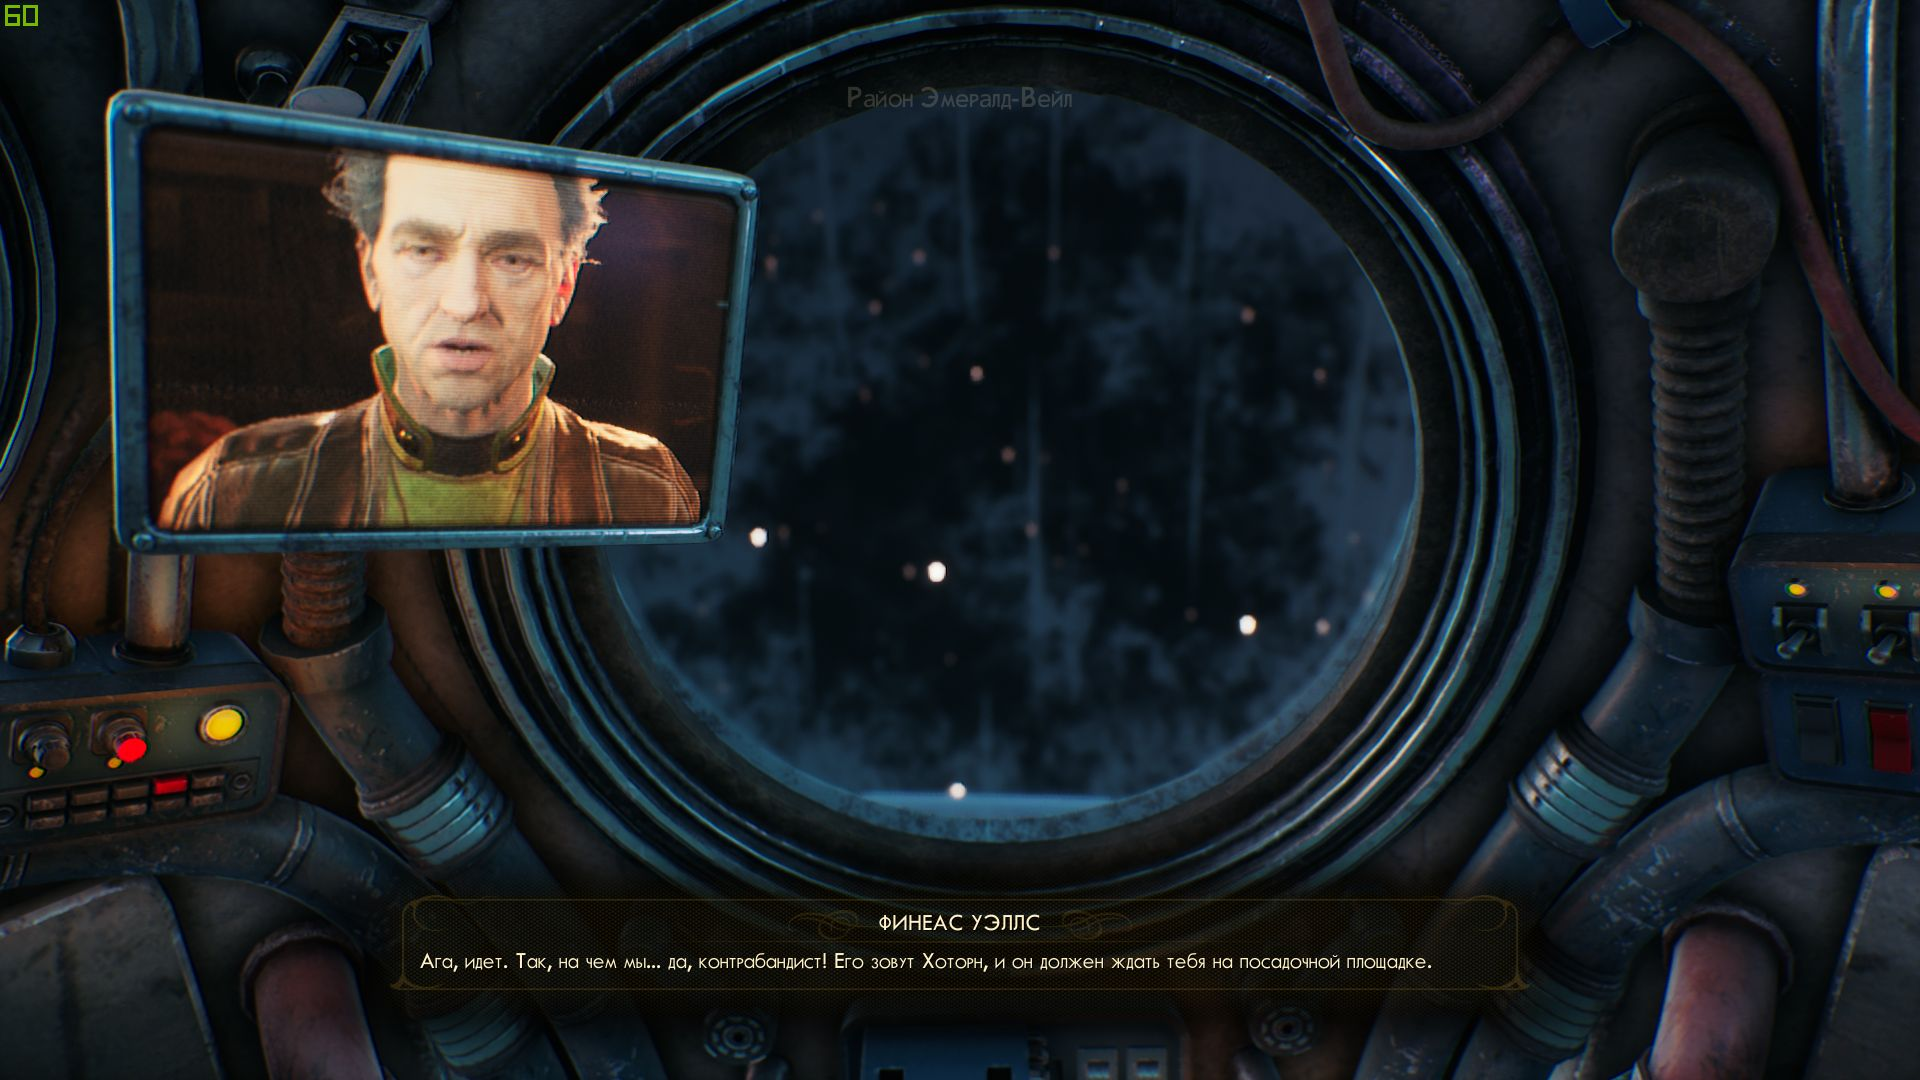 00013.Jpg - Outer Worlds, the